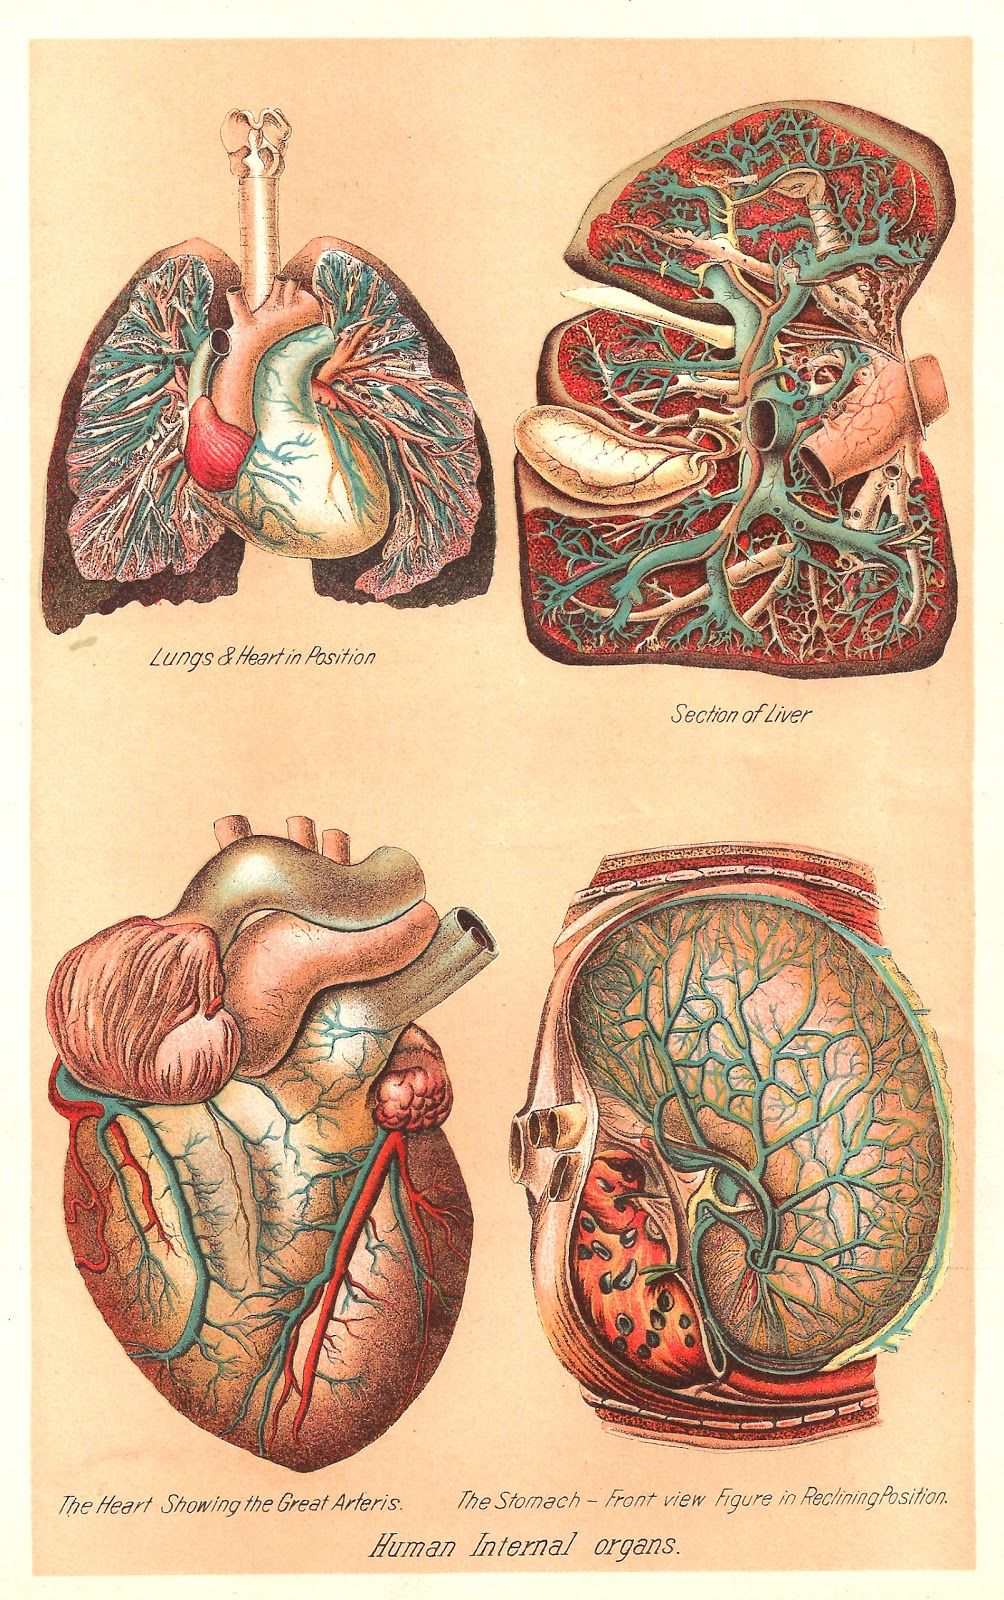 This is a color plate from a vintage medical and health book showing ...